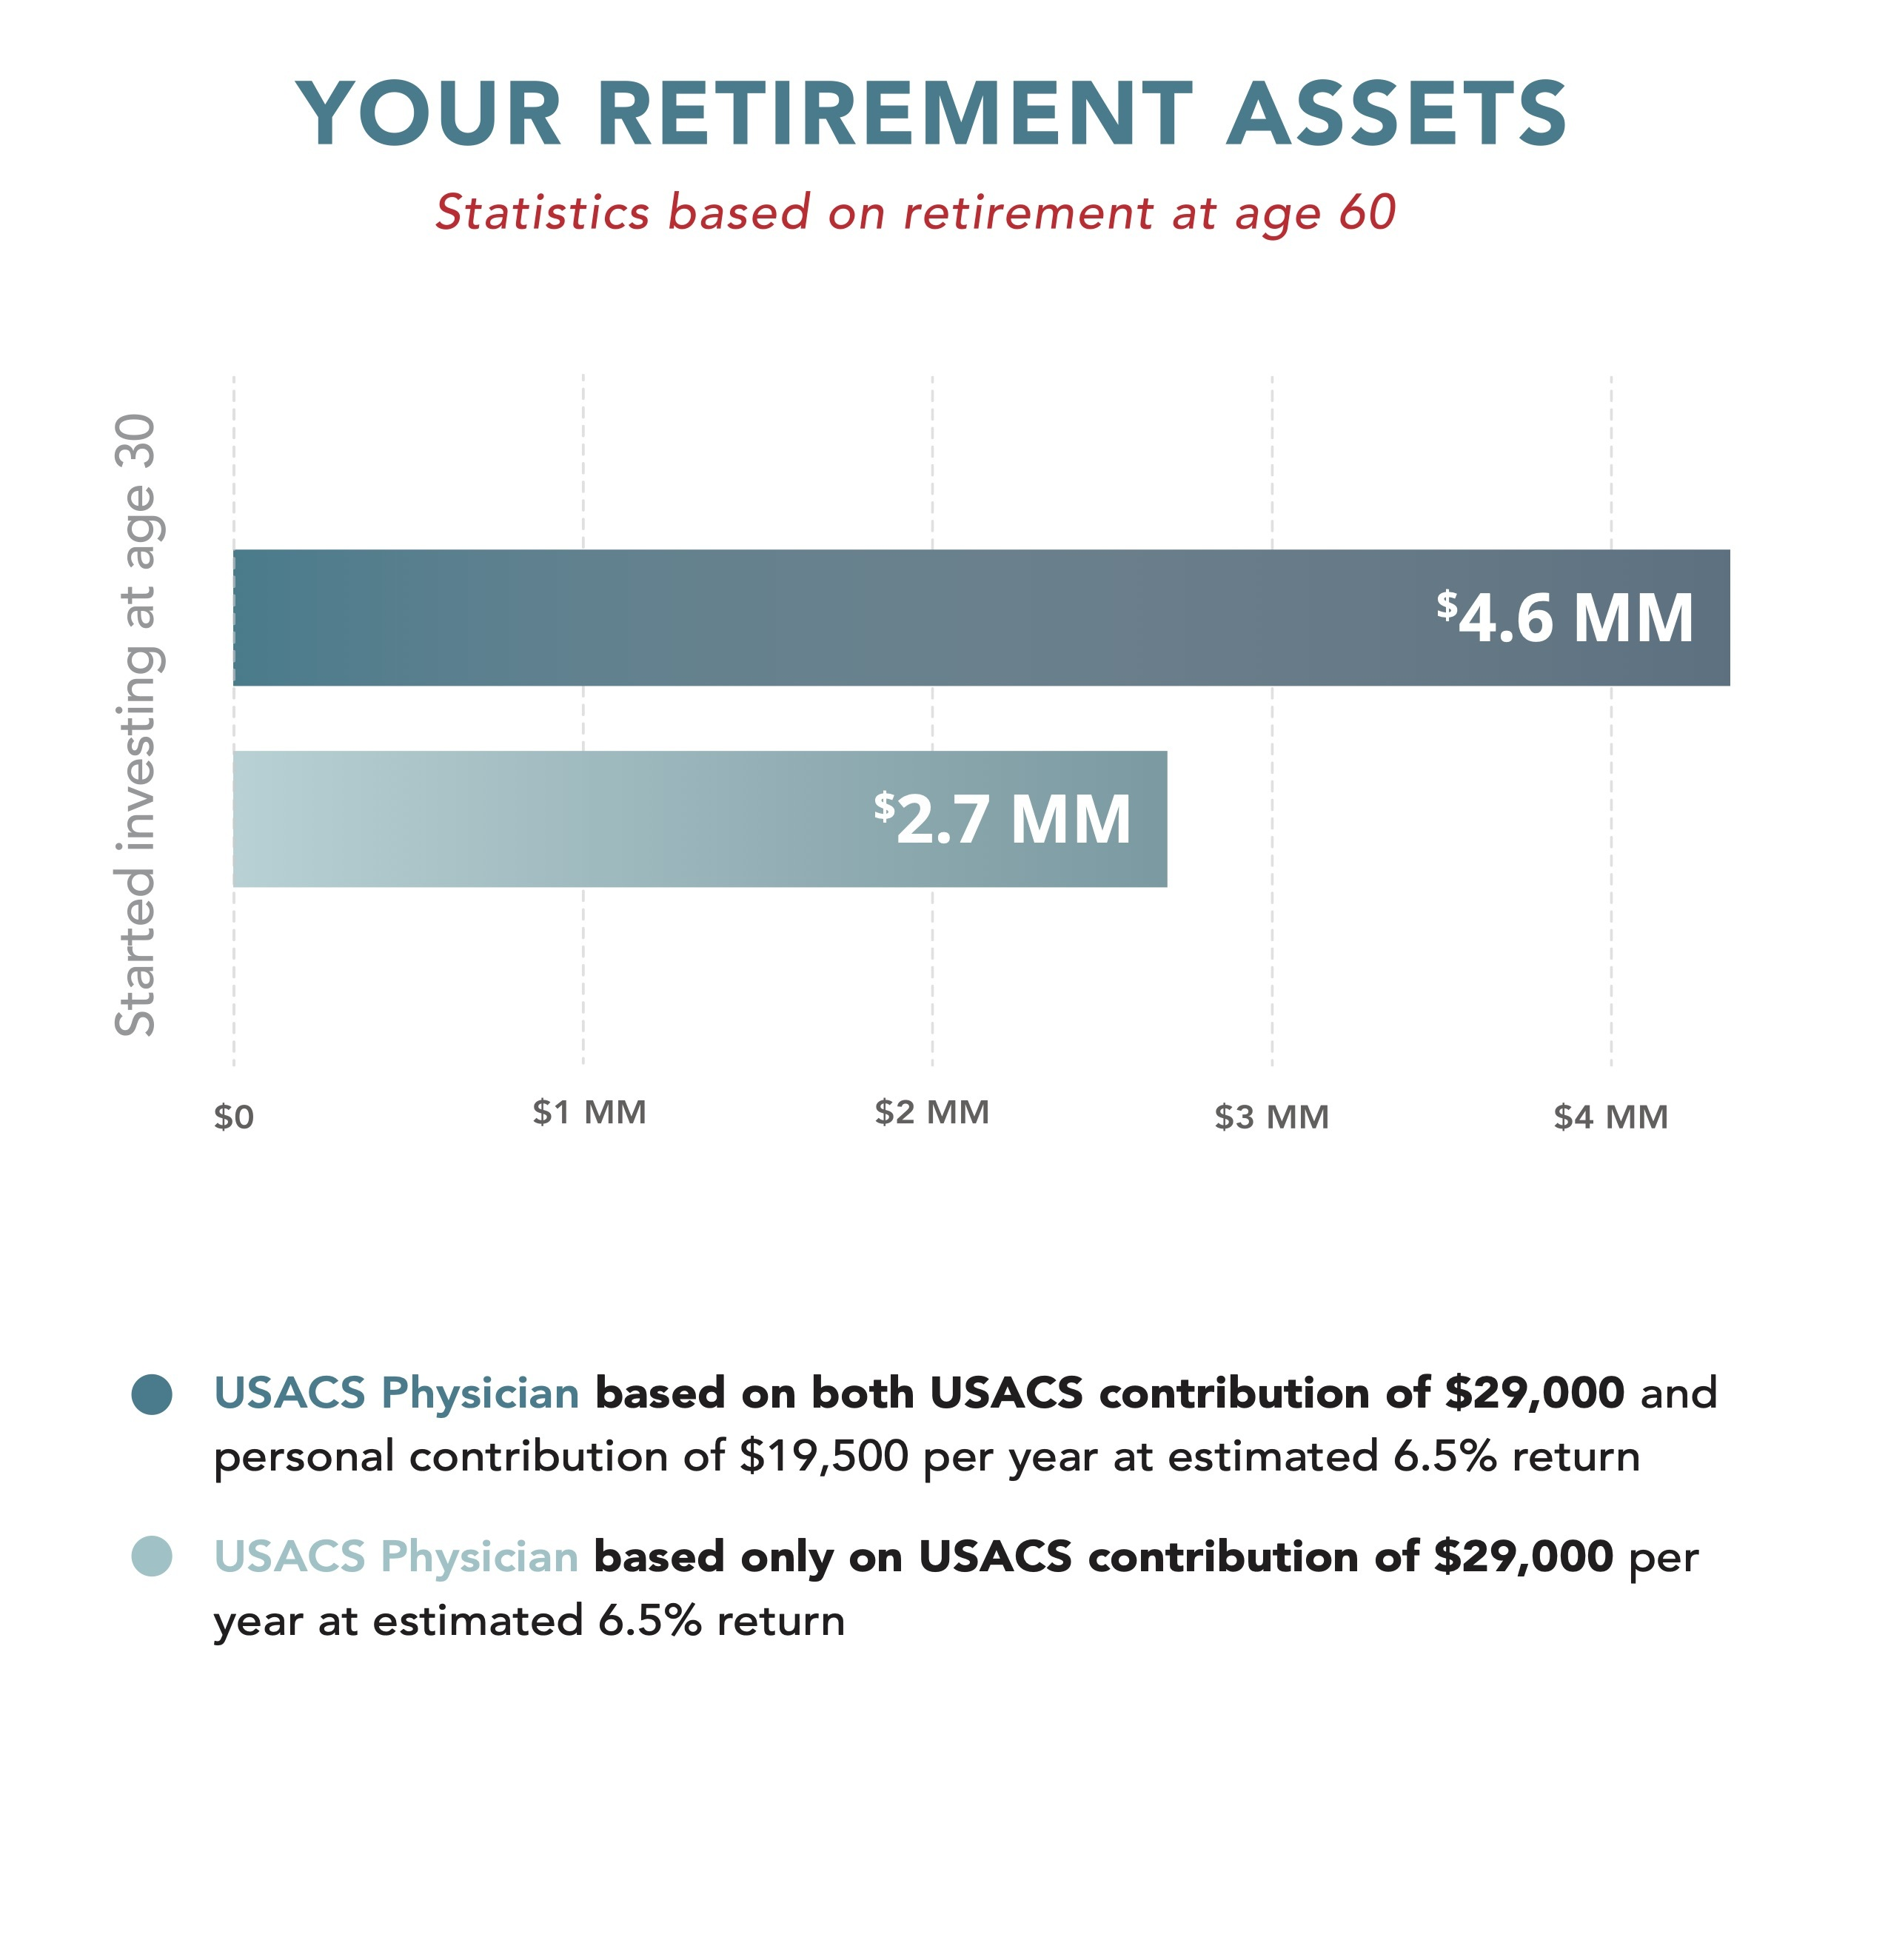 Chart comparing growth of retirement assets based on age of physician across three different plans